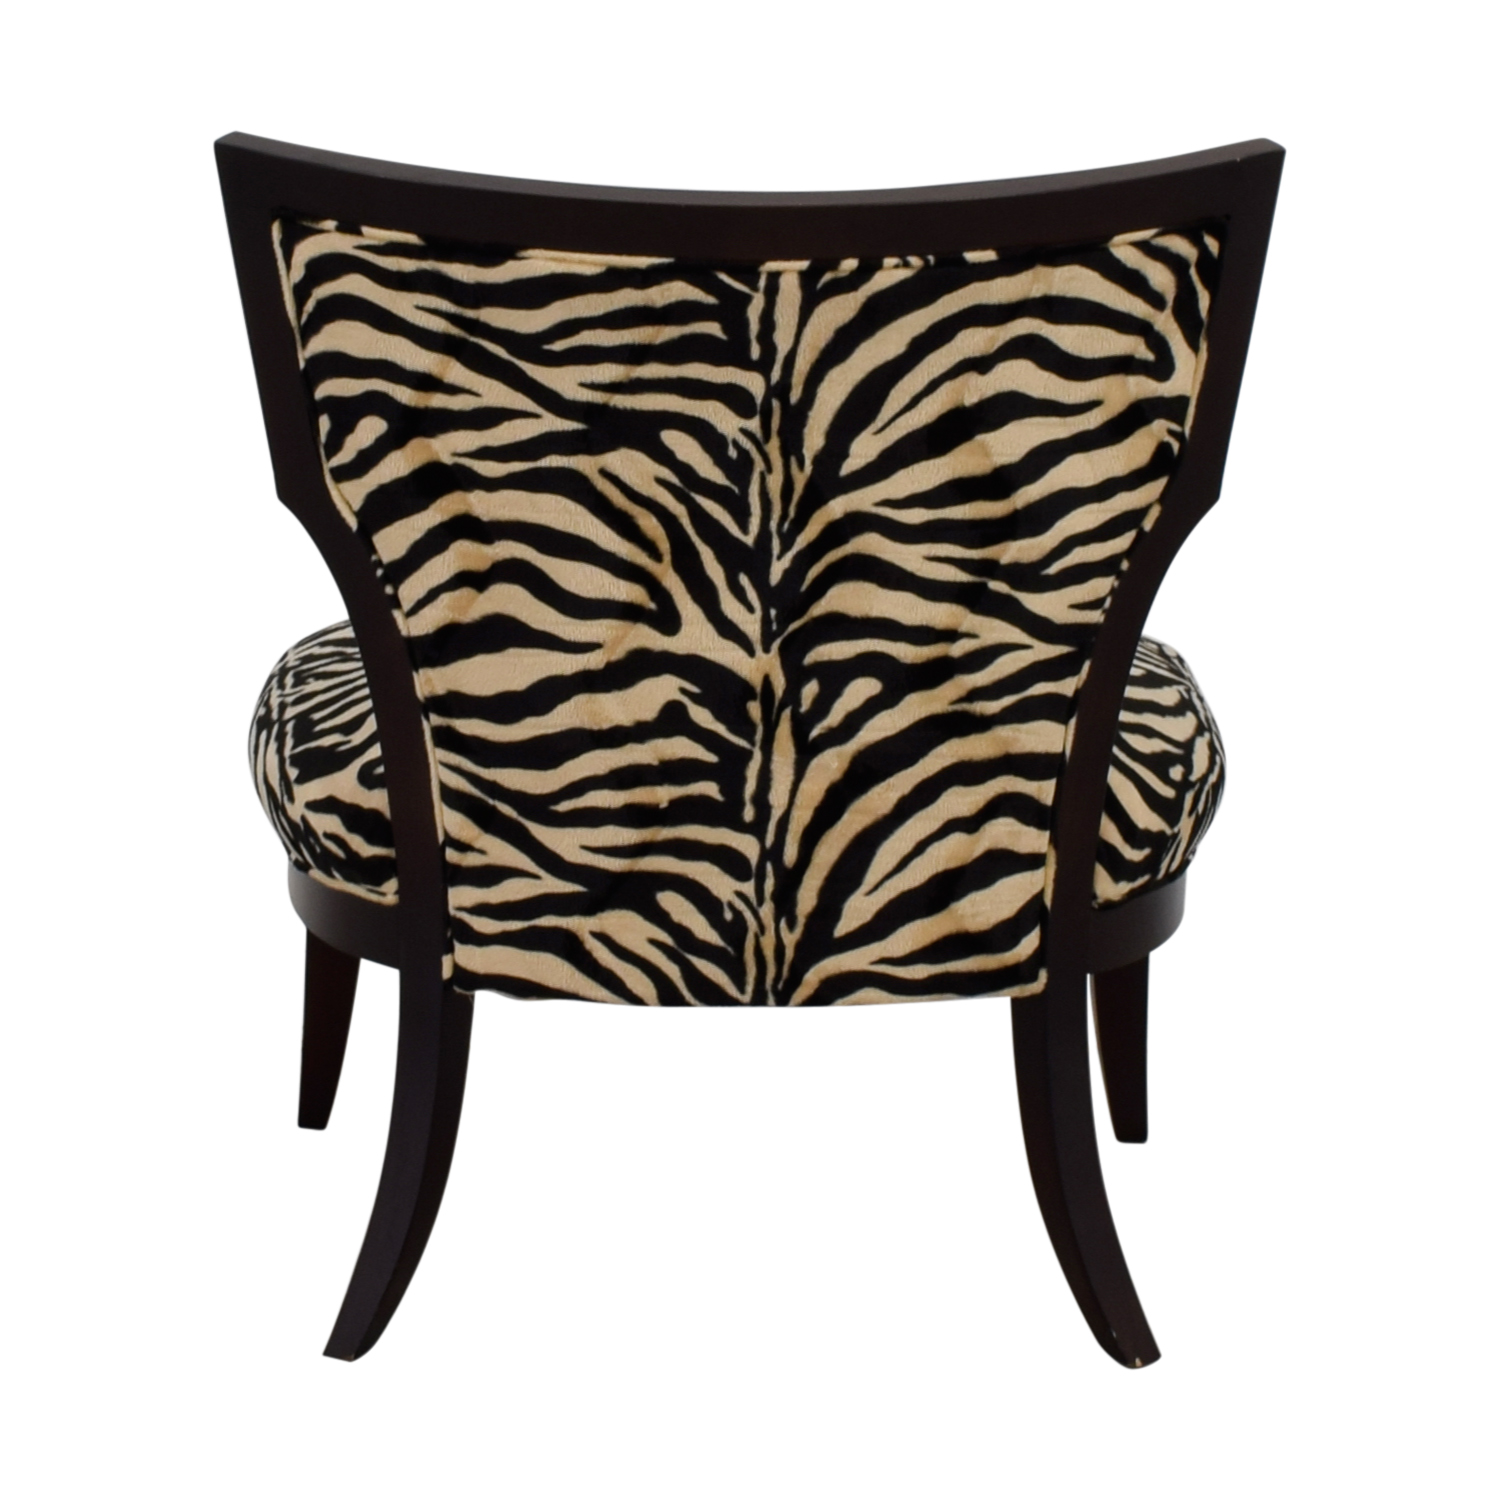 Z Gallerie Z Gallerie Zebra Chair for sale